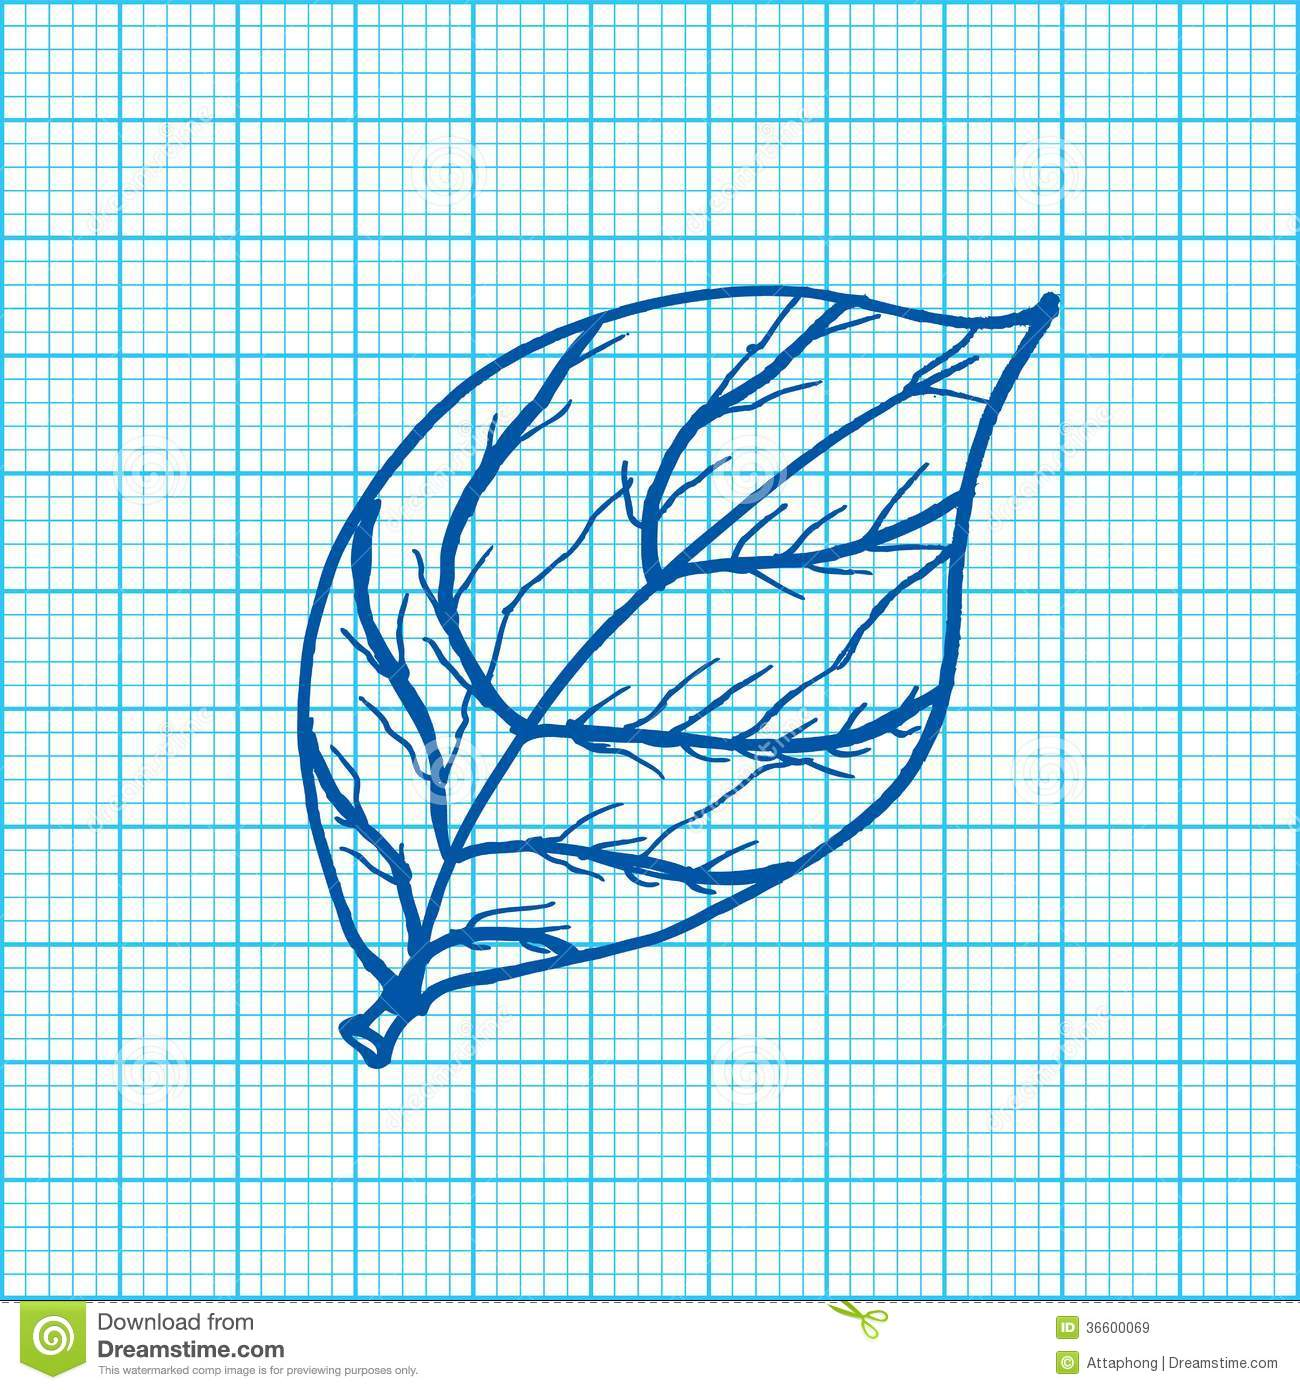 Drawing Of Leaves On Graph Paper Vector Royalty Free Stock